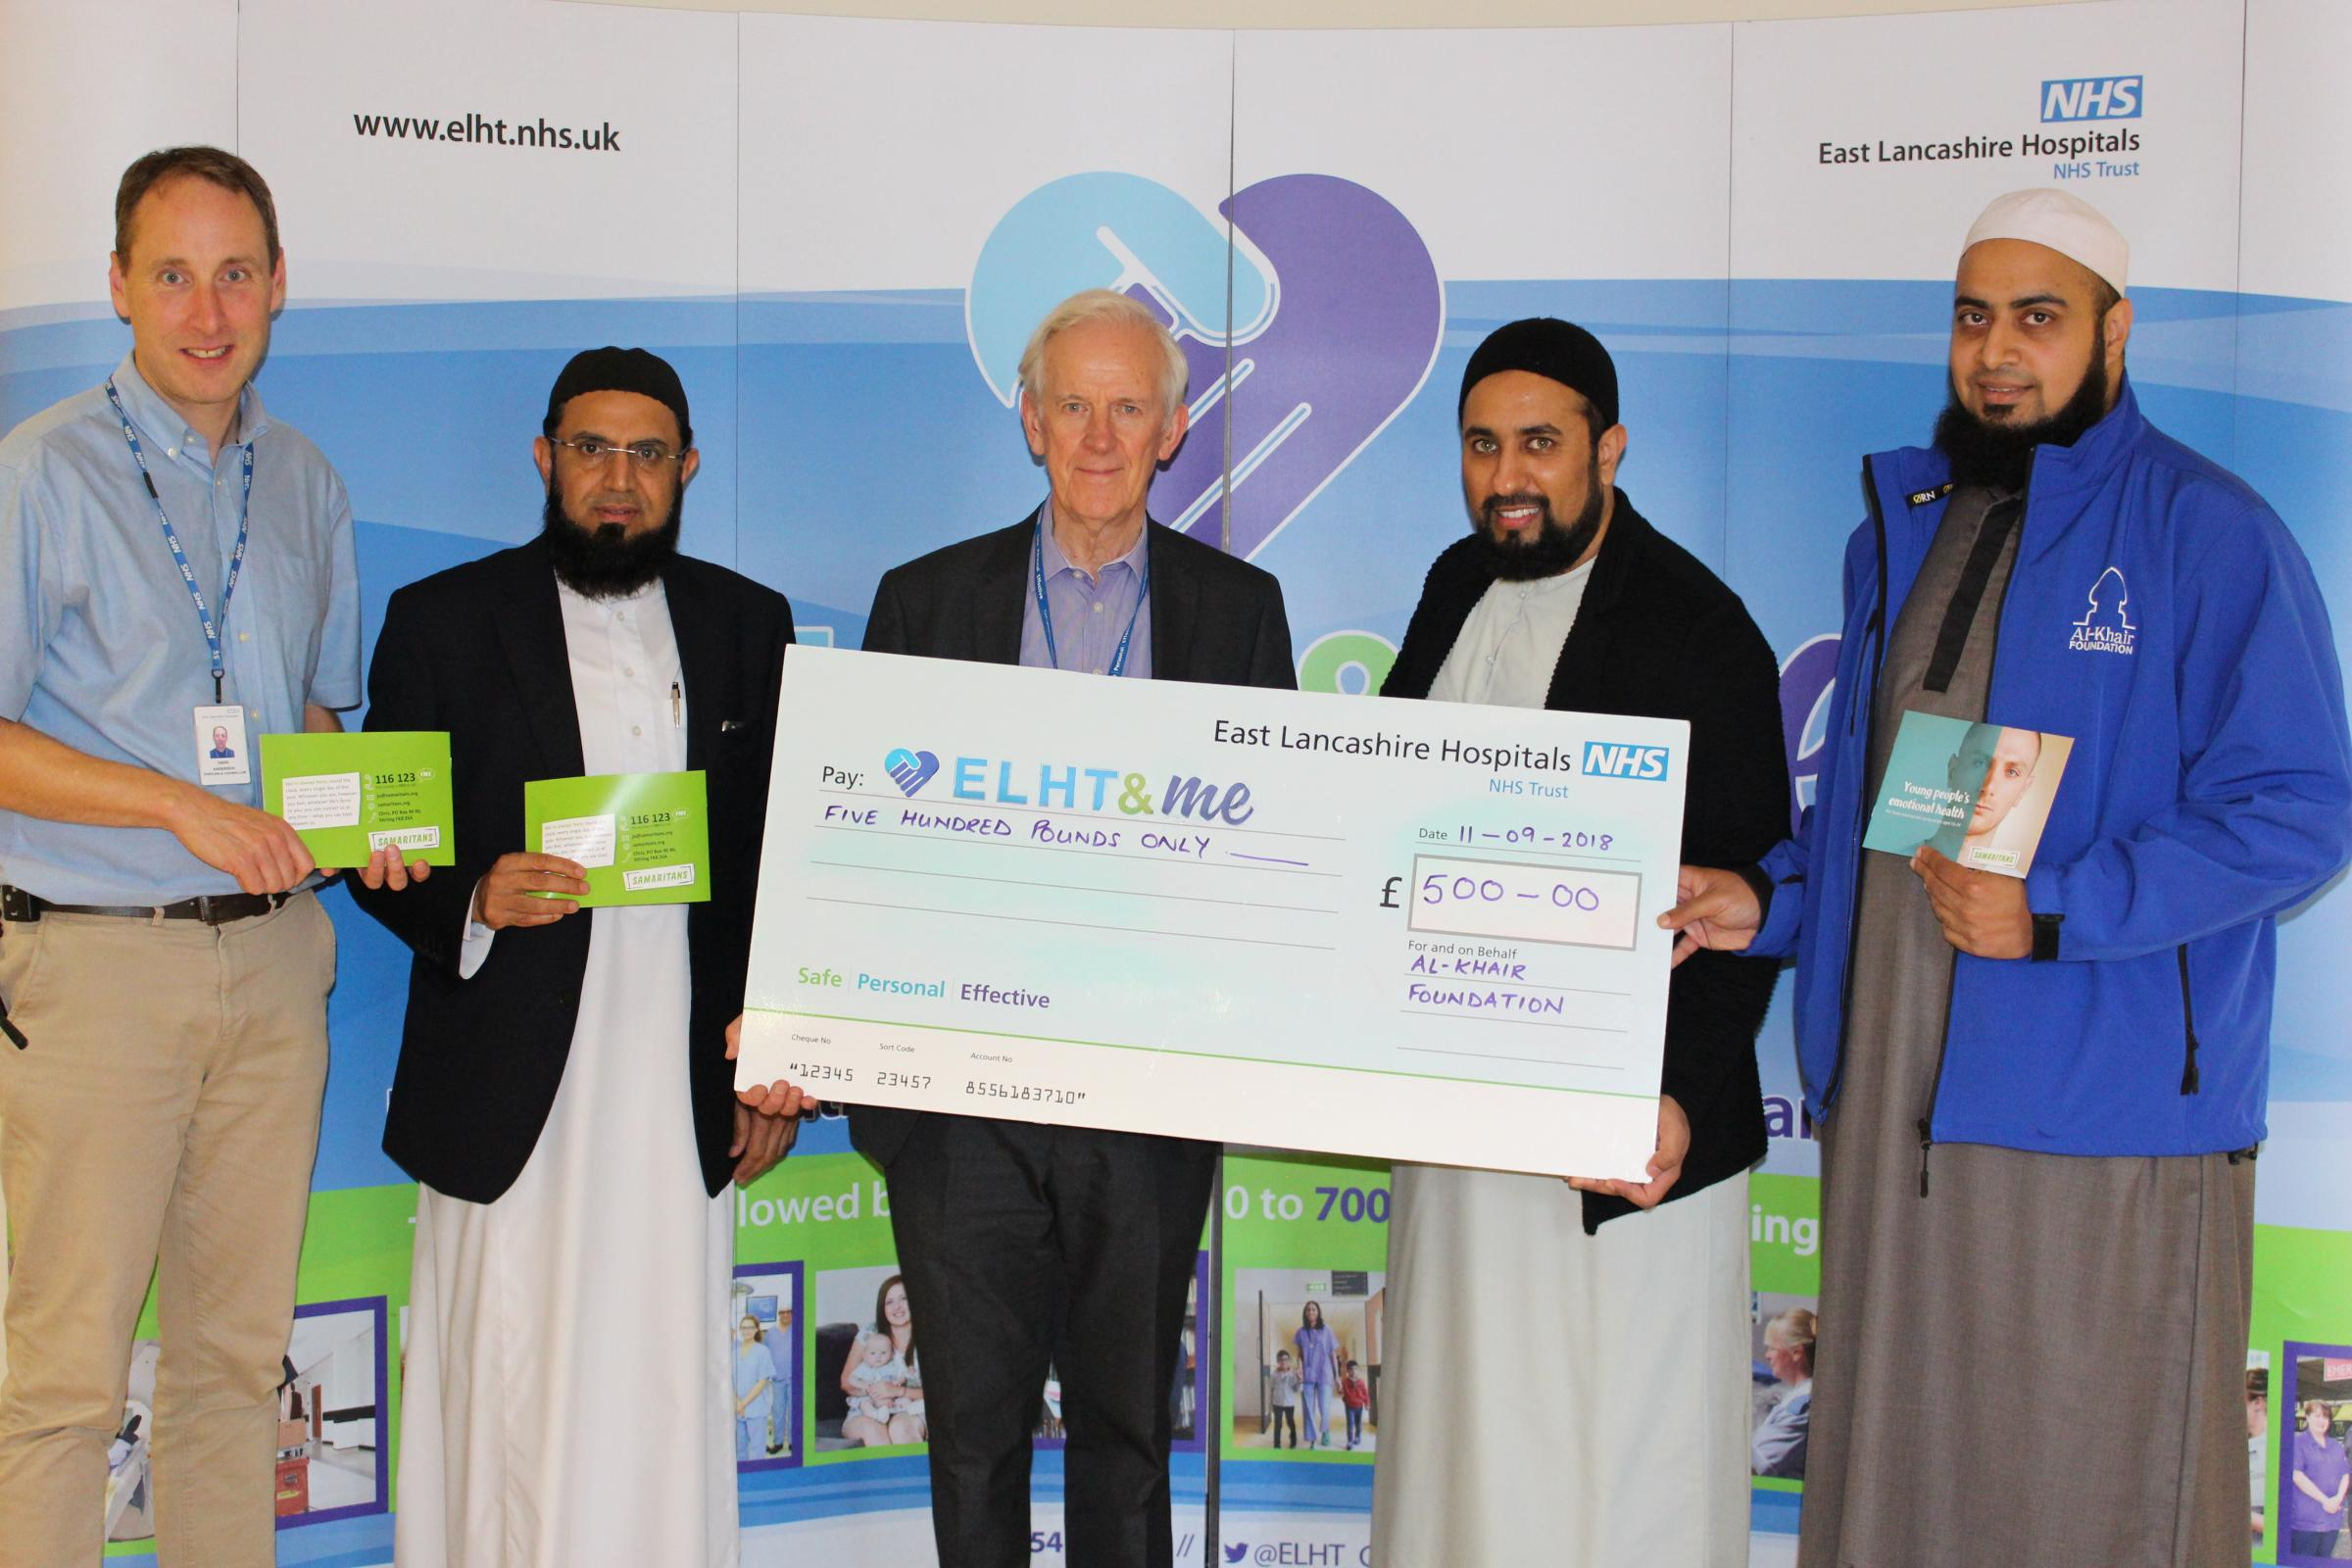 David Anderson, East Lancashire NHS Trust hospital chaplain, Imam Fazal Hassan, the trust's Muslim chaplain, Mike Wedgeworth, non-executive director, Zubair Vali, events coordinator for Al-Khair Foundation and Imran Musa, national manager for the foun